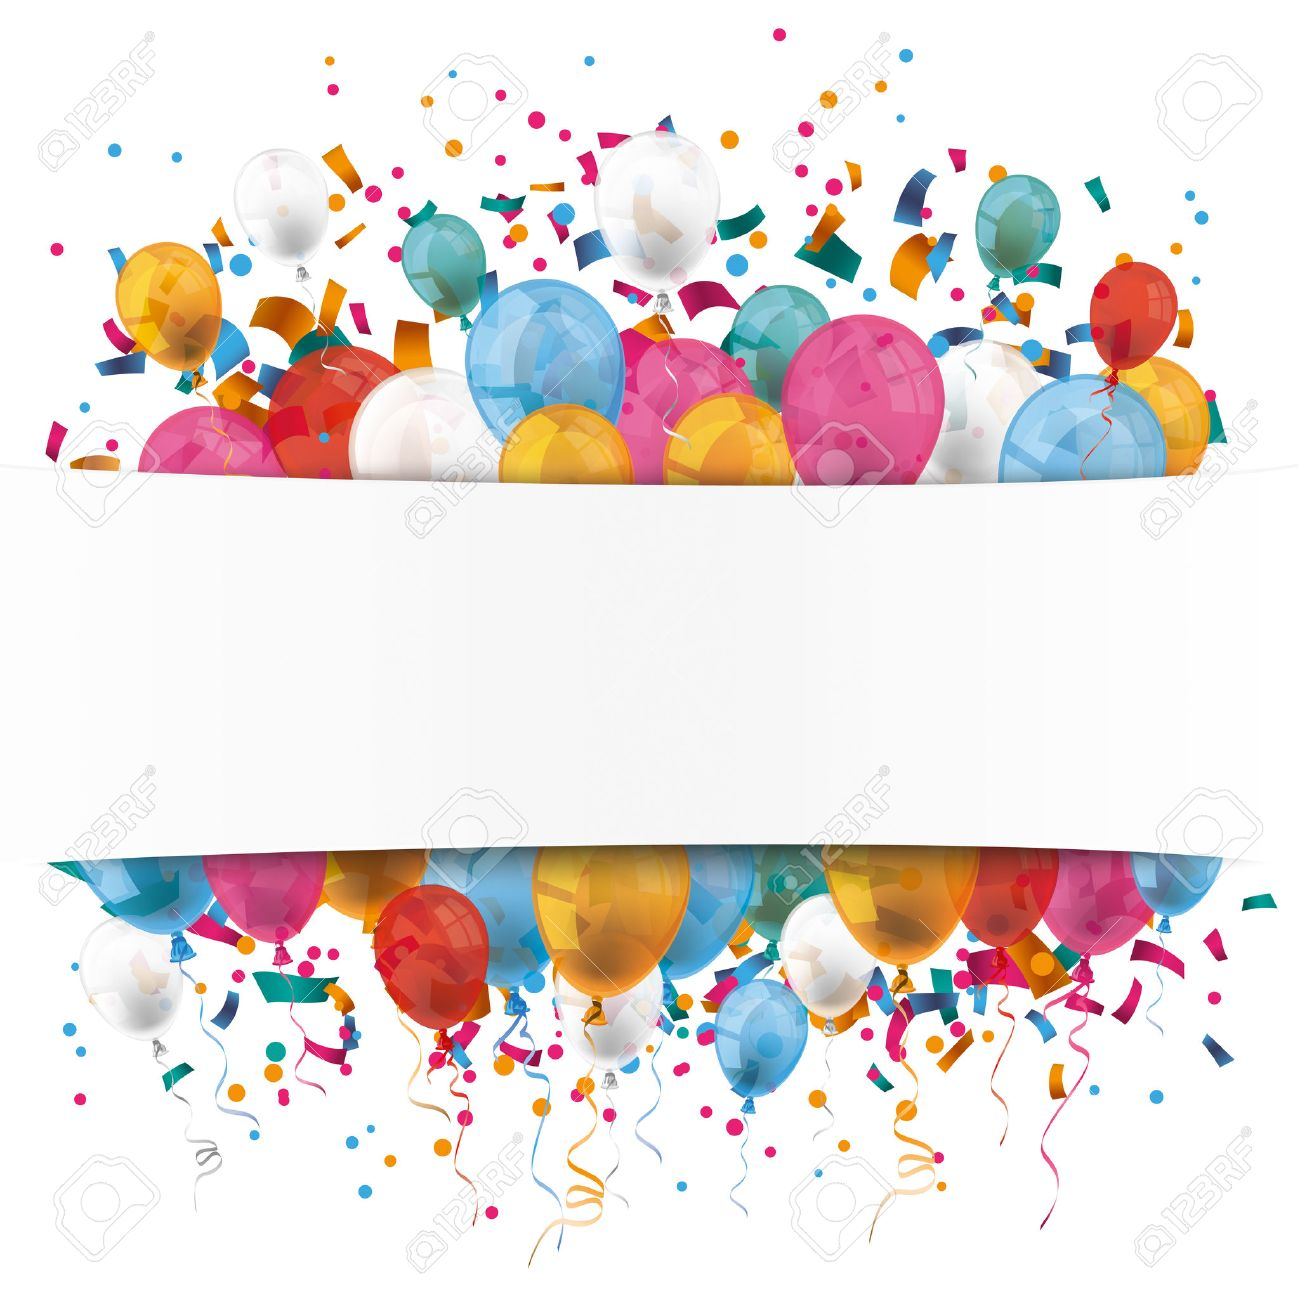 White paper banner, colored balloons and colored confetti. Eps 10 vector file. - 53471908